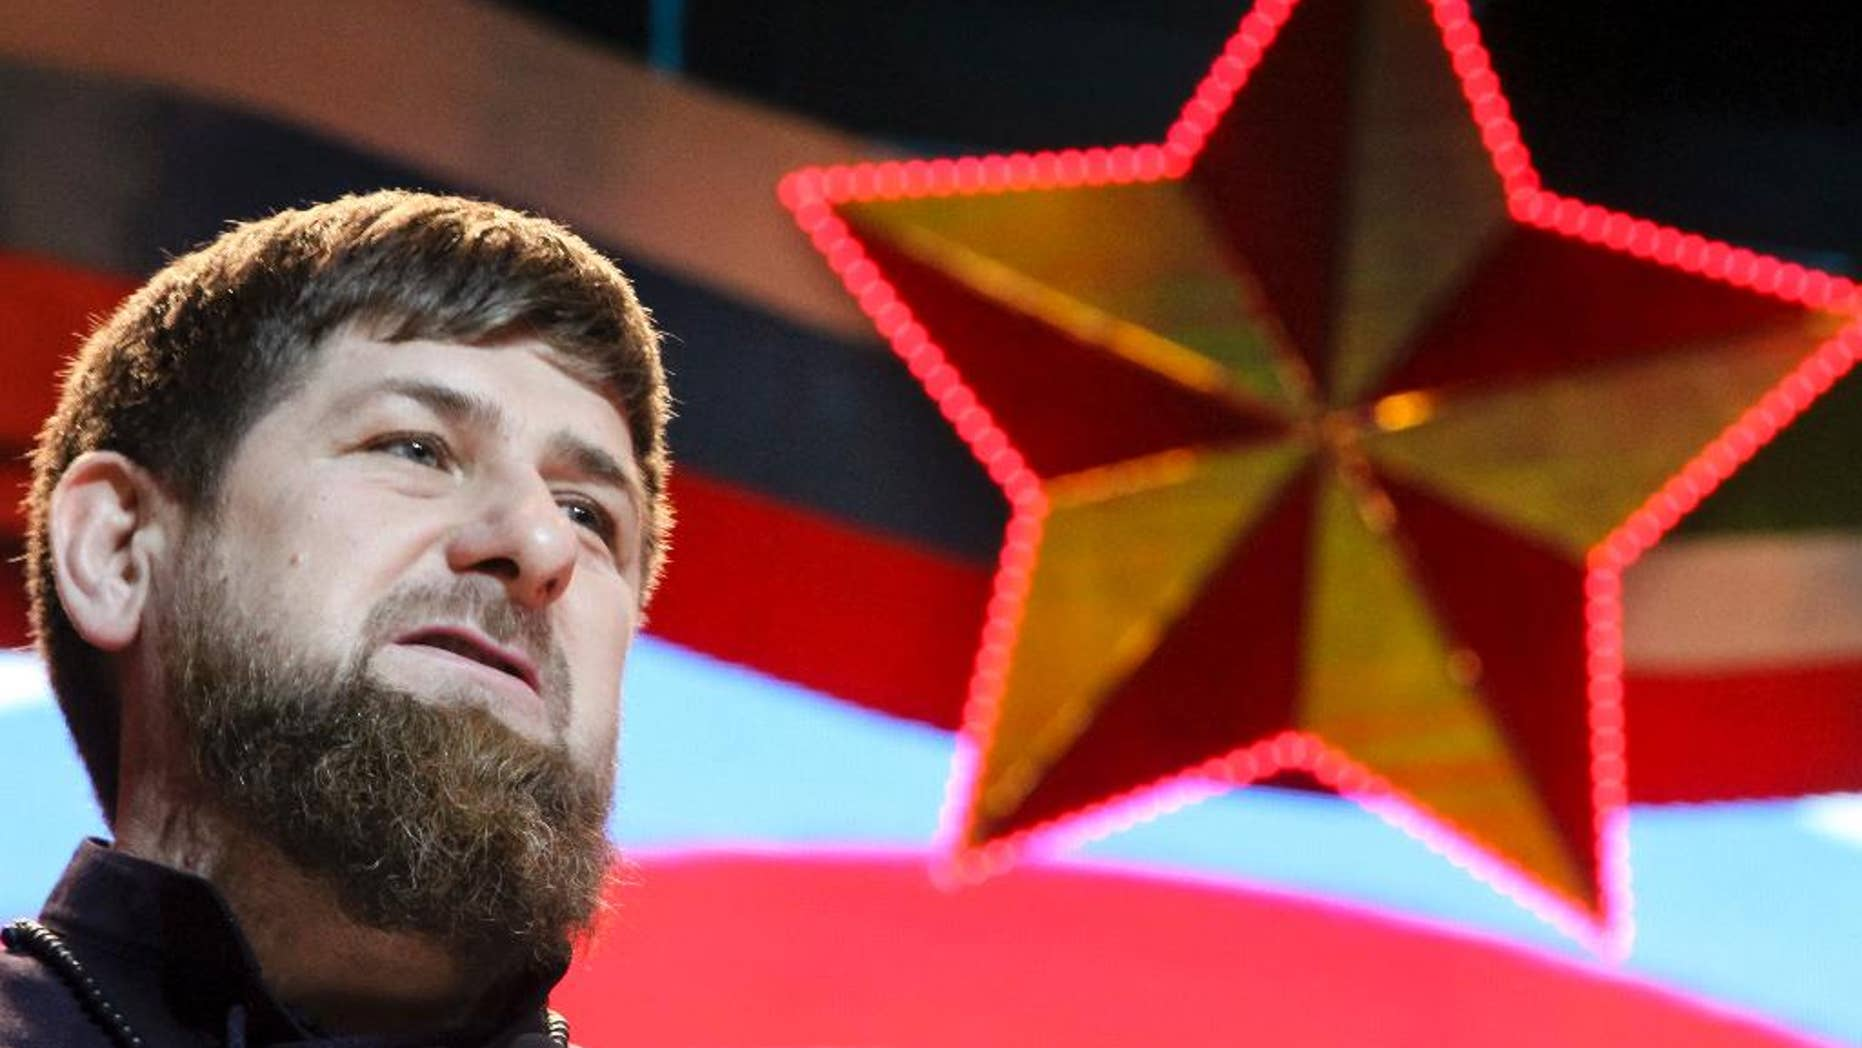 """FILE - In this file photo dated Saturday, Feb. 20, 2016, Chechen regional leader Ramzan Kadyrov attends celebrations marking Defenders of the Fatherland Day in Chechnya's provincial capital Grozny, Russia. Kadyrov said Thursday Dec. 12, 2016, that Chechen troops will be happy to fight the """"scum"""" in Syria, after Russian media reported Chechen military police would deploy to protect the Russian air base in Syria and perform other tasks. (AP Photo/Musa Sadulayev, FILE)"""